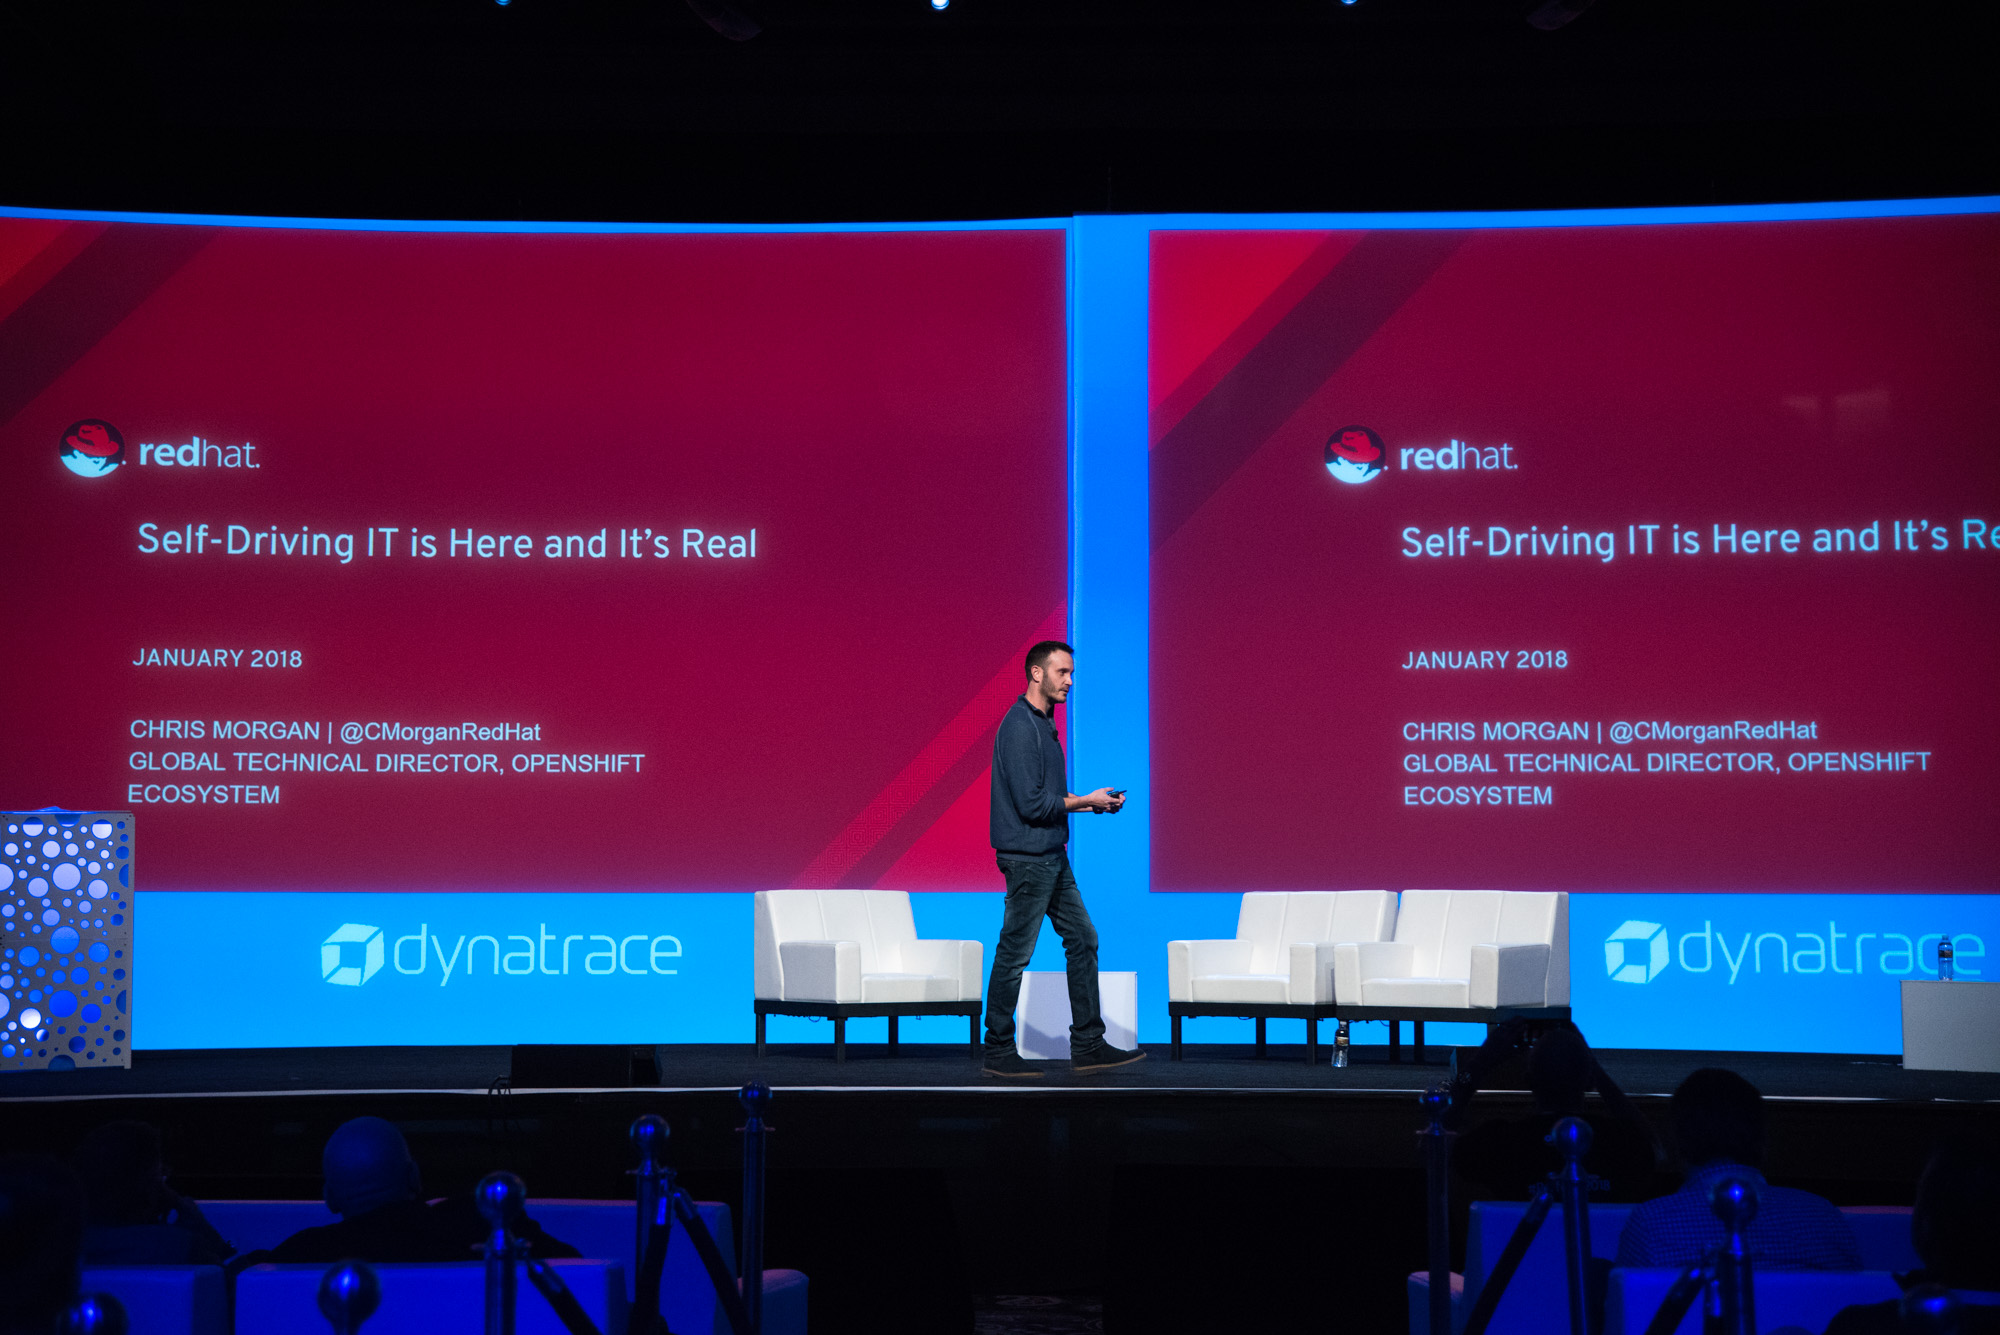 Redhat presenting on the main stage at perform 2018